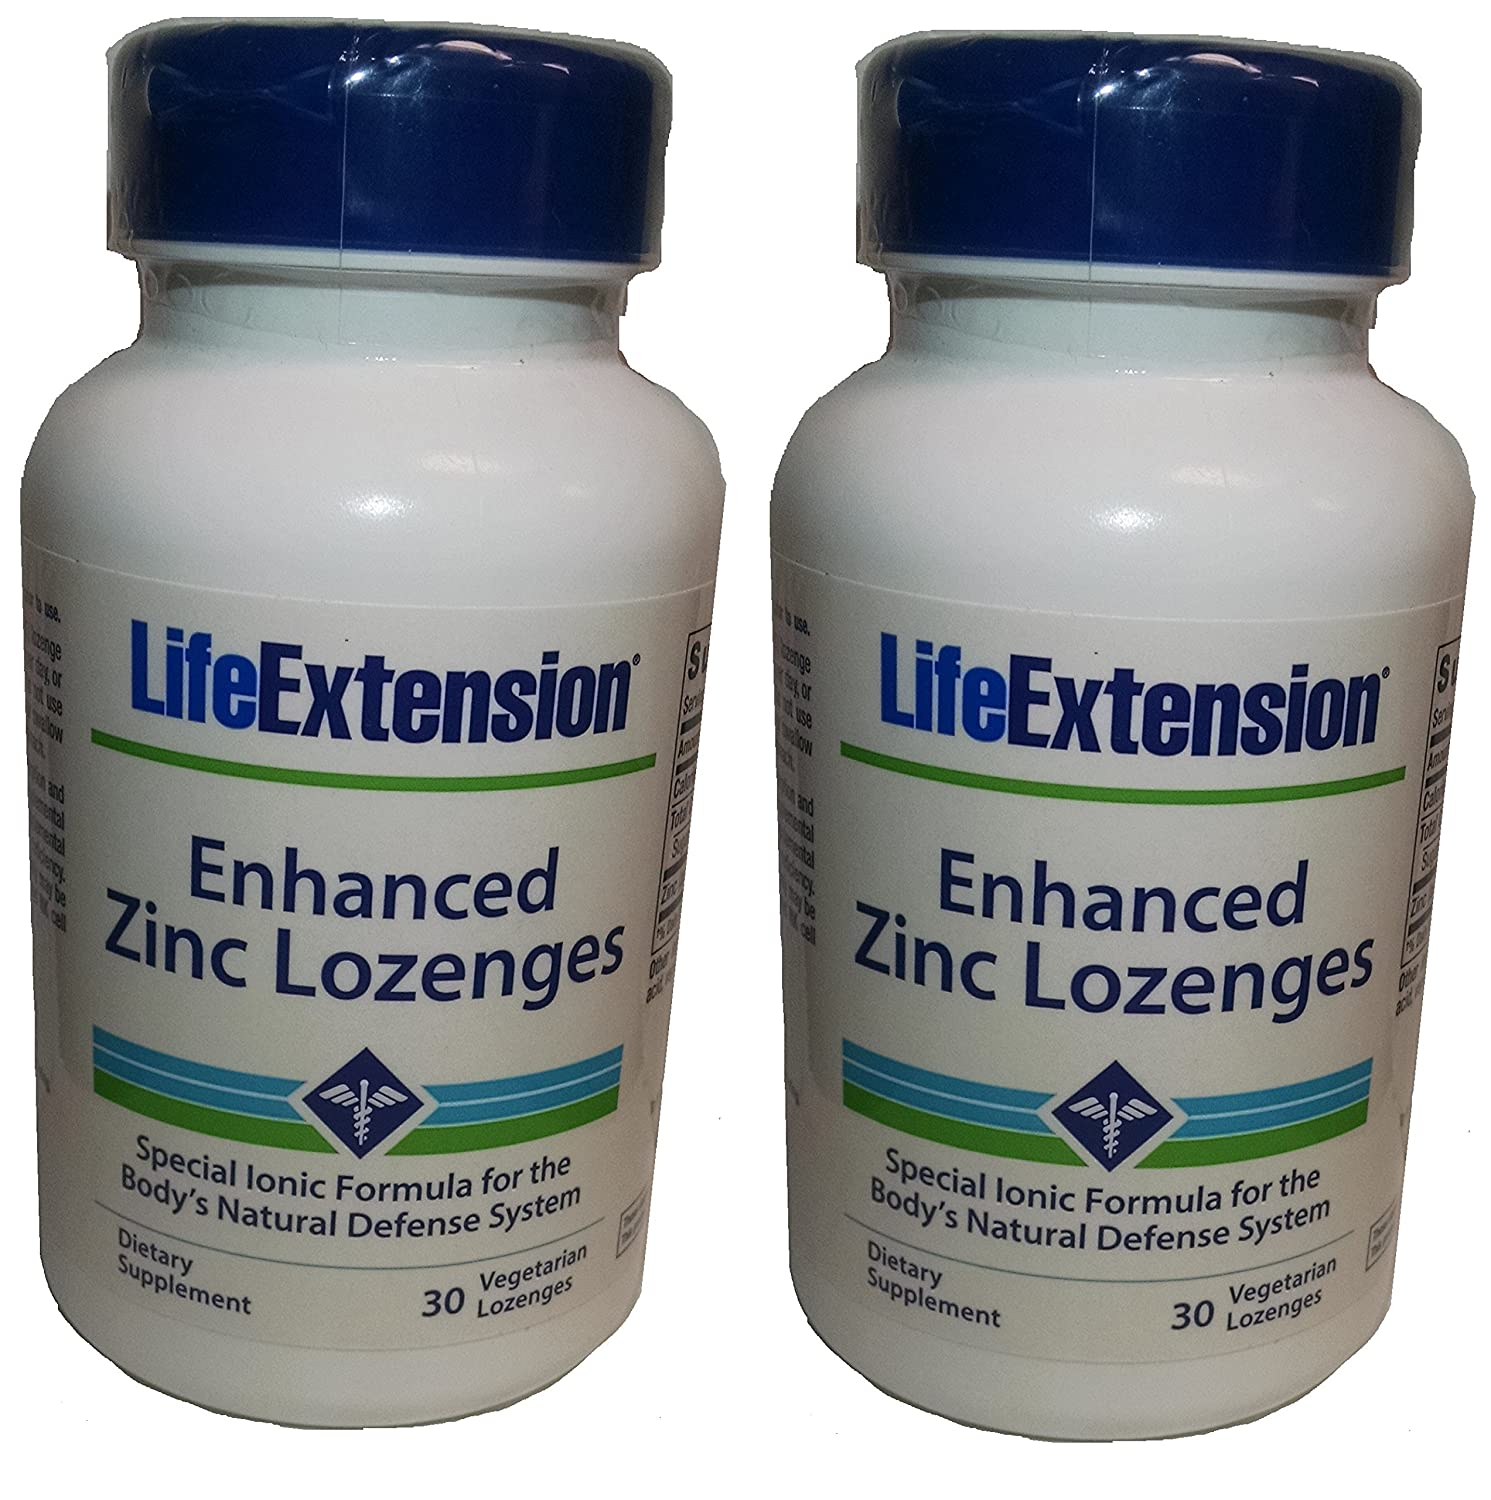 Life Extension Enhanced Zinc 30 Vegetarian Lozenges (2 Pack) - Accudata Marketing Group, LLC